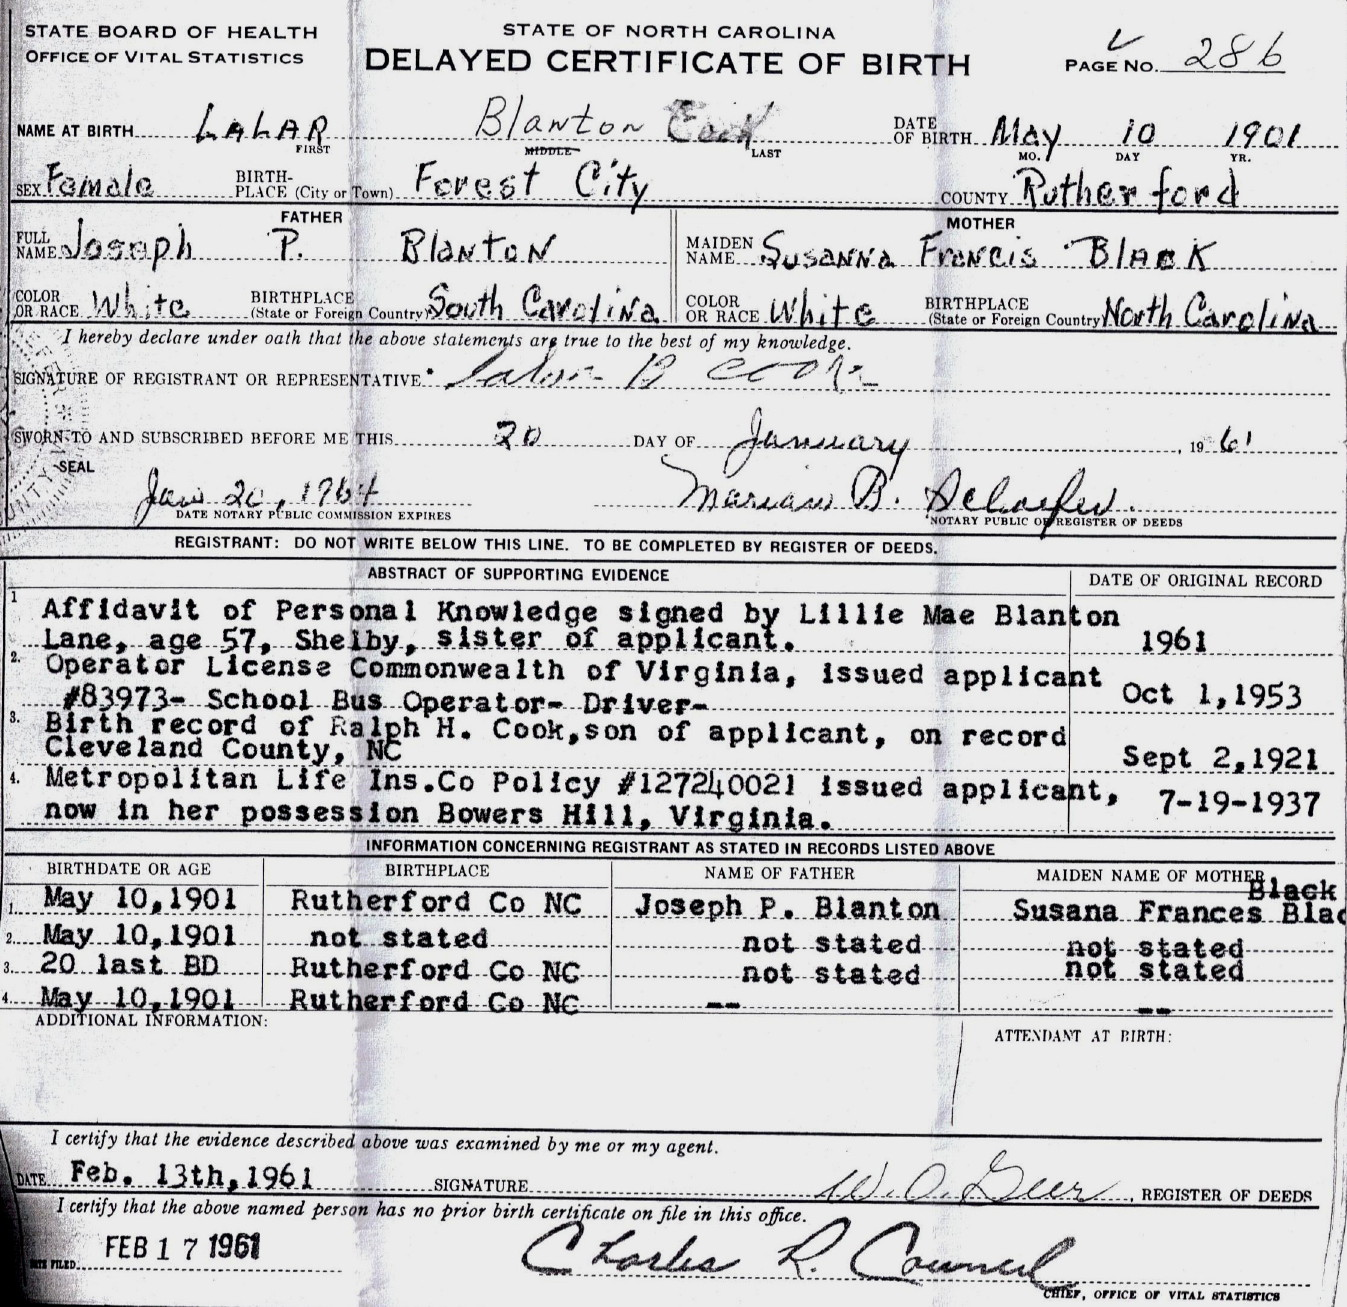 Lalar Blanton's delayed birth certificate.